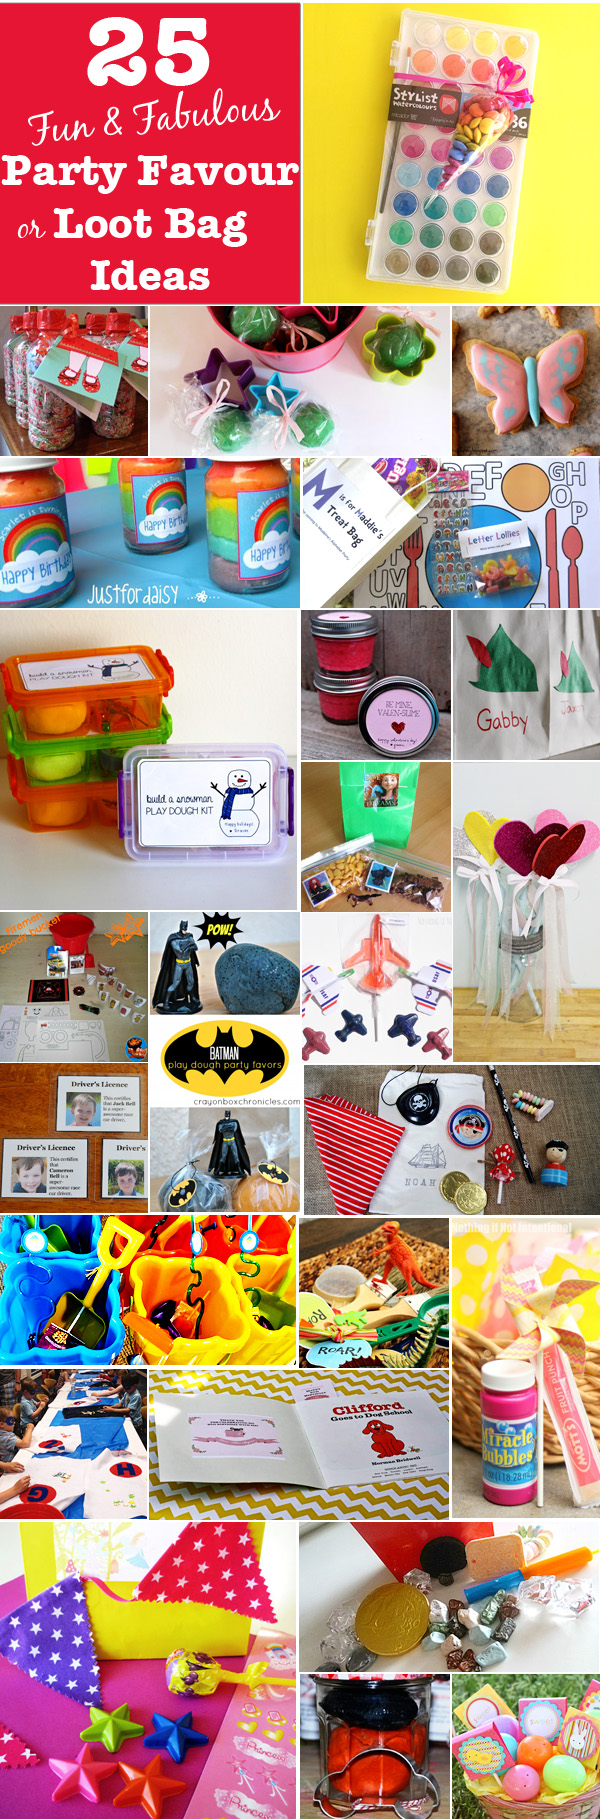 25 Kids Loot Bag Party Favor Ideas